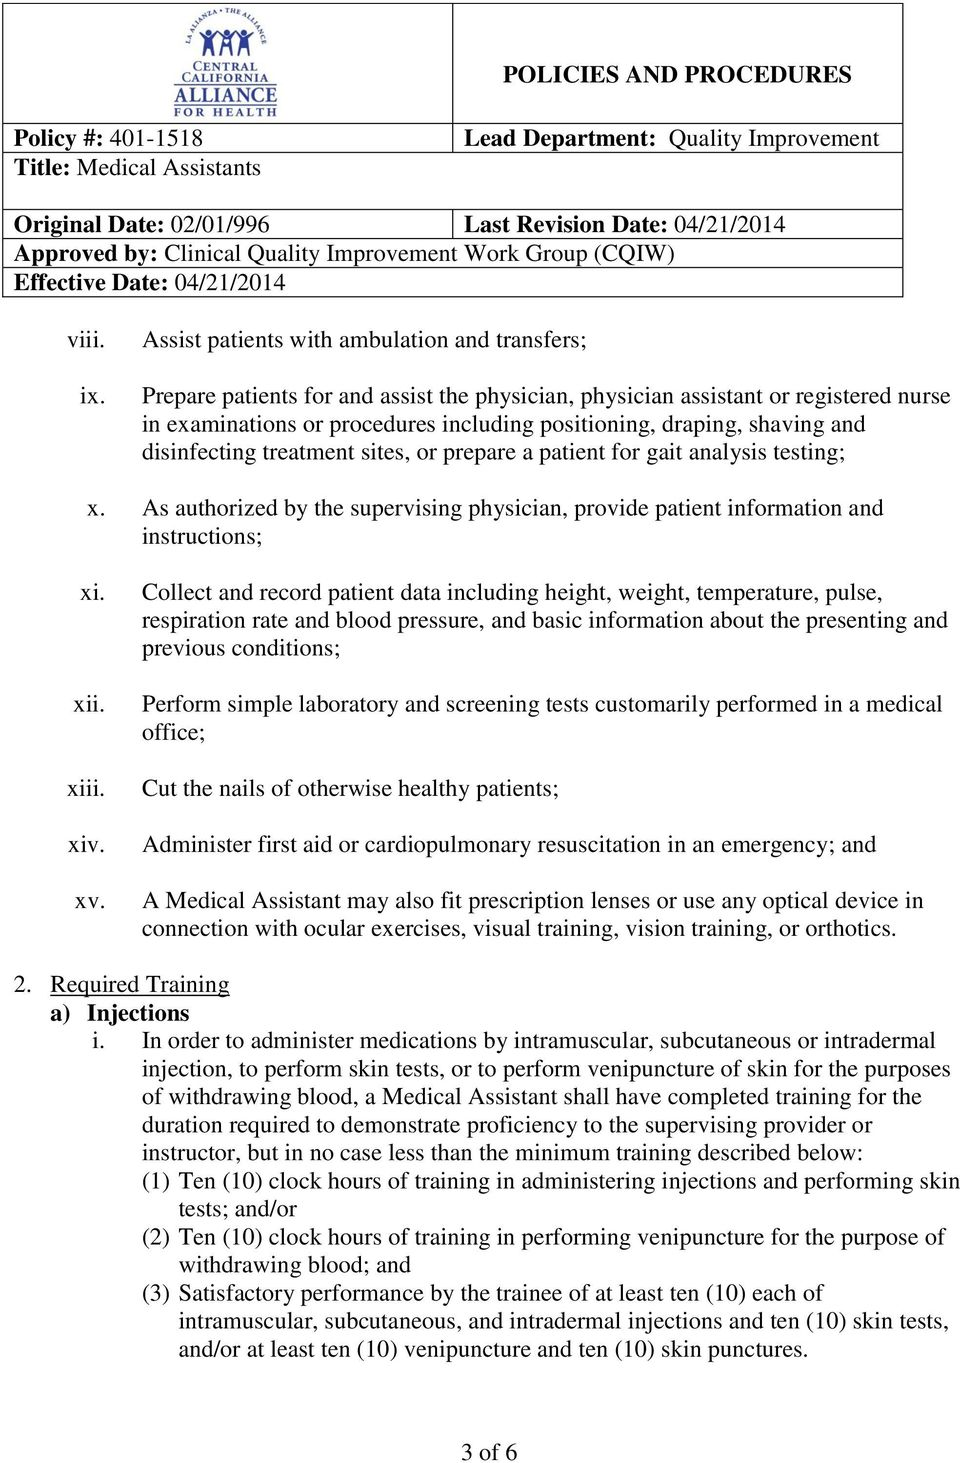 shaving and disinfecting treatment sites, or prepare a patient for gait analysis testing; x. As authorized by the supervising physician, provide patient information and instructions; xi. xii. xiii.